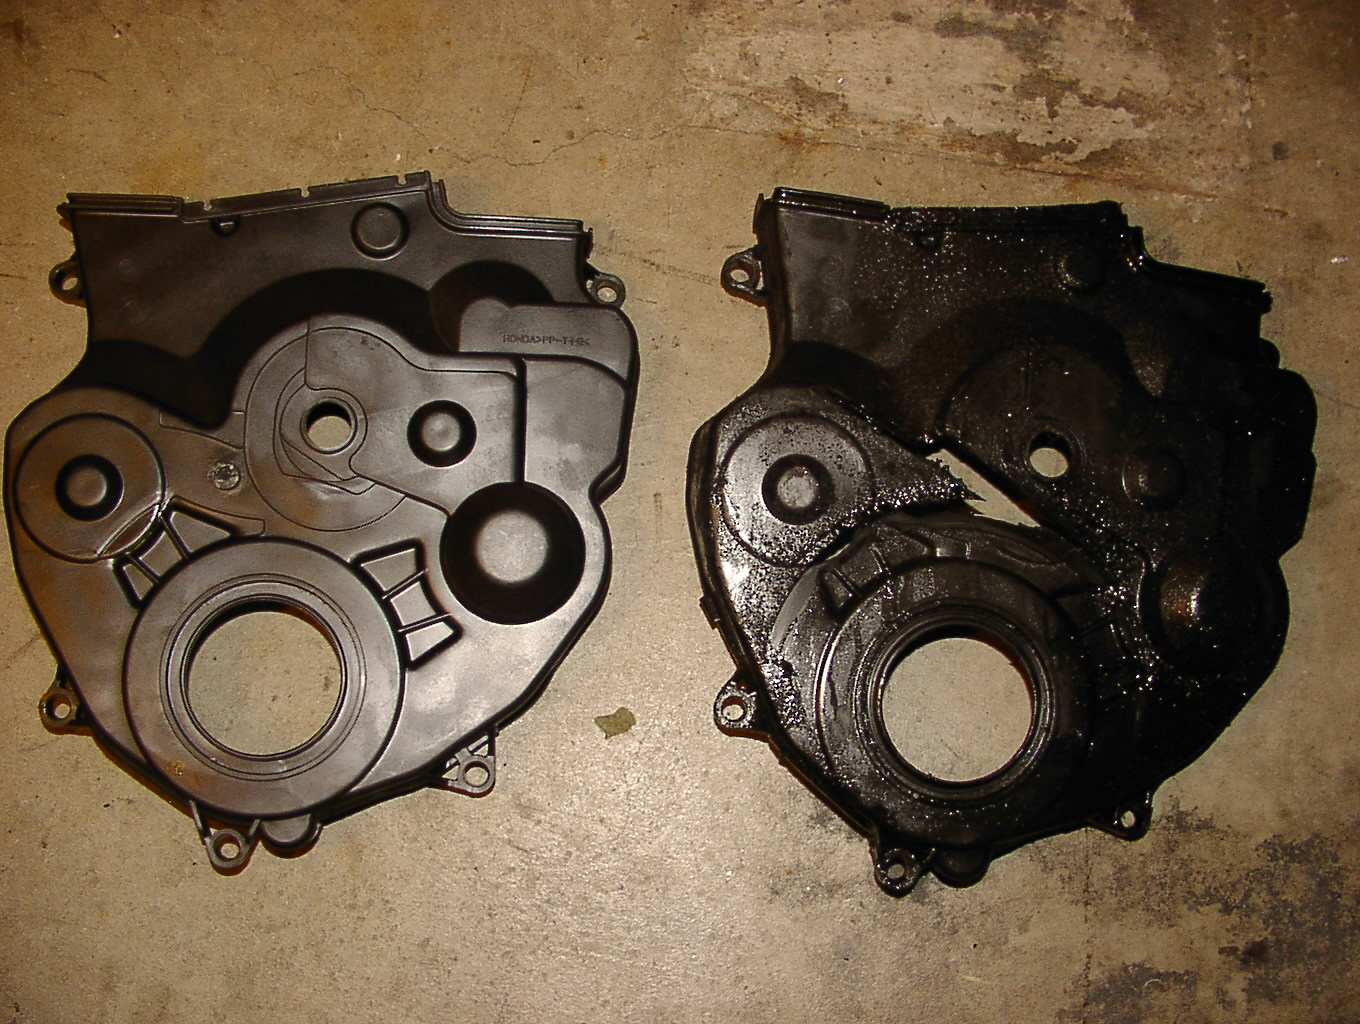 1372079941 12067259 1 additionally A500097708CON in addition hqdefault together with  in addition Rear hub bearing for Honda Odyssey HUB142 likewise  as well s l225 further 07 hn99accv6 6 021a in addition 191738152629 1 additionally tck329 as well 5. on 2006 honda accord timing belt repment cost